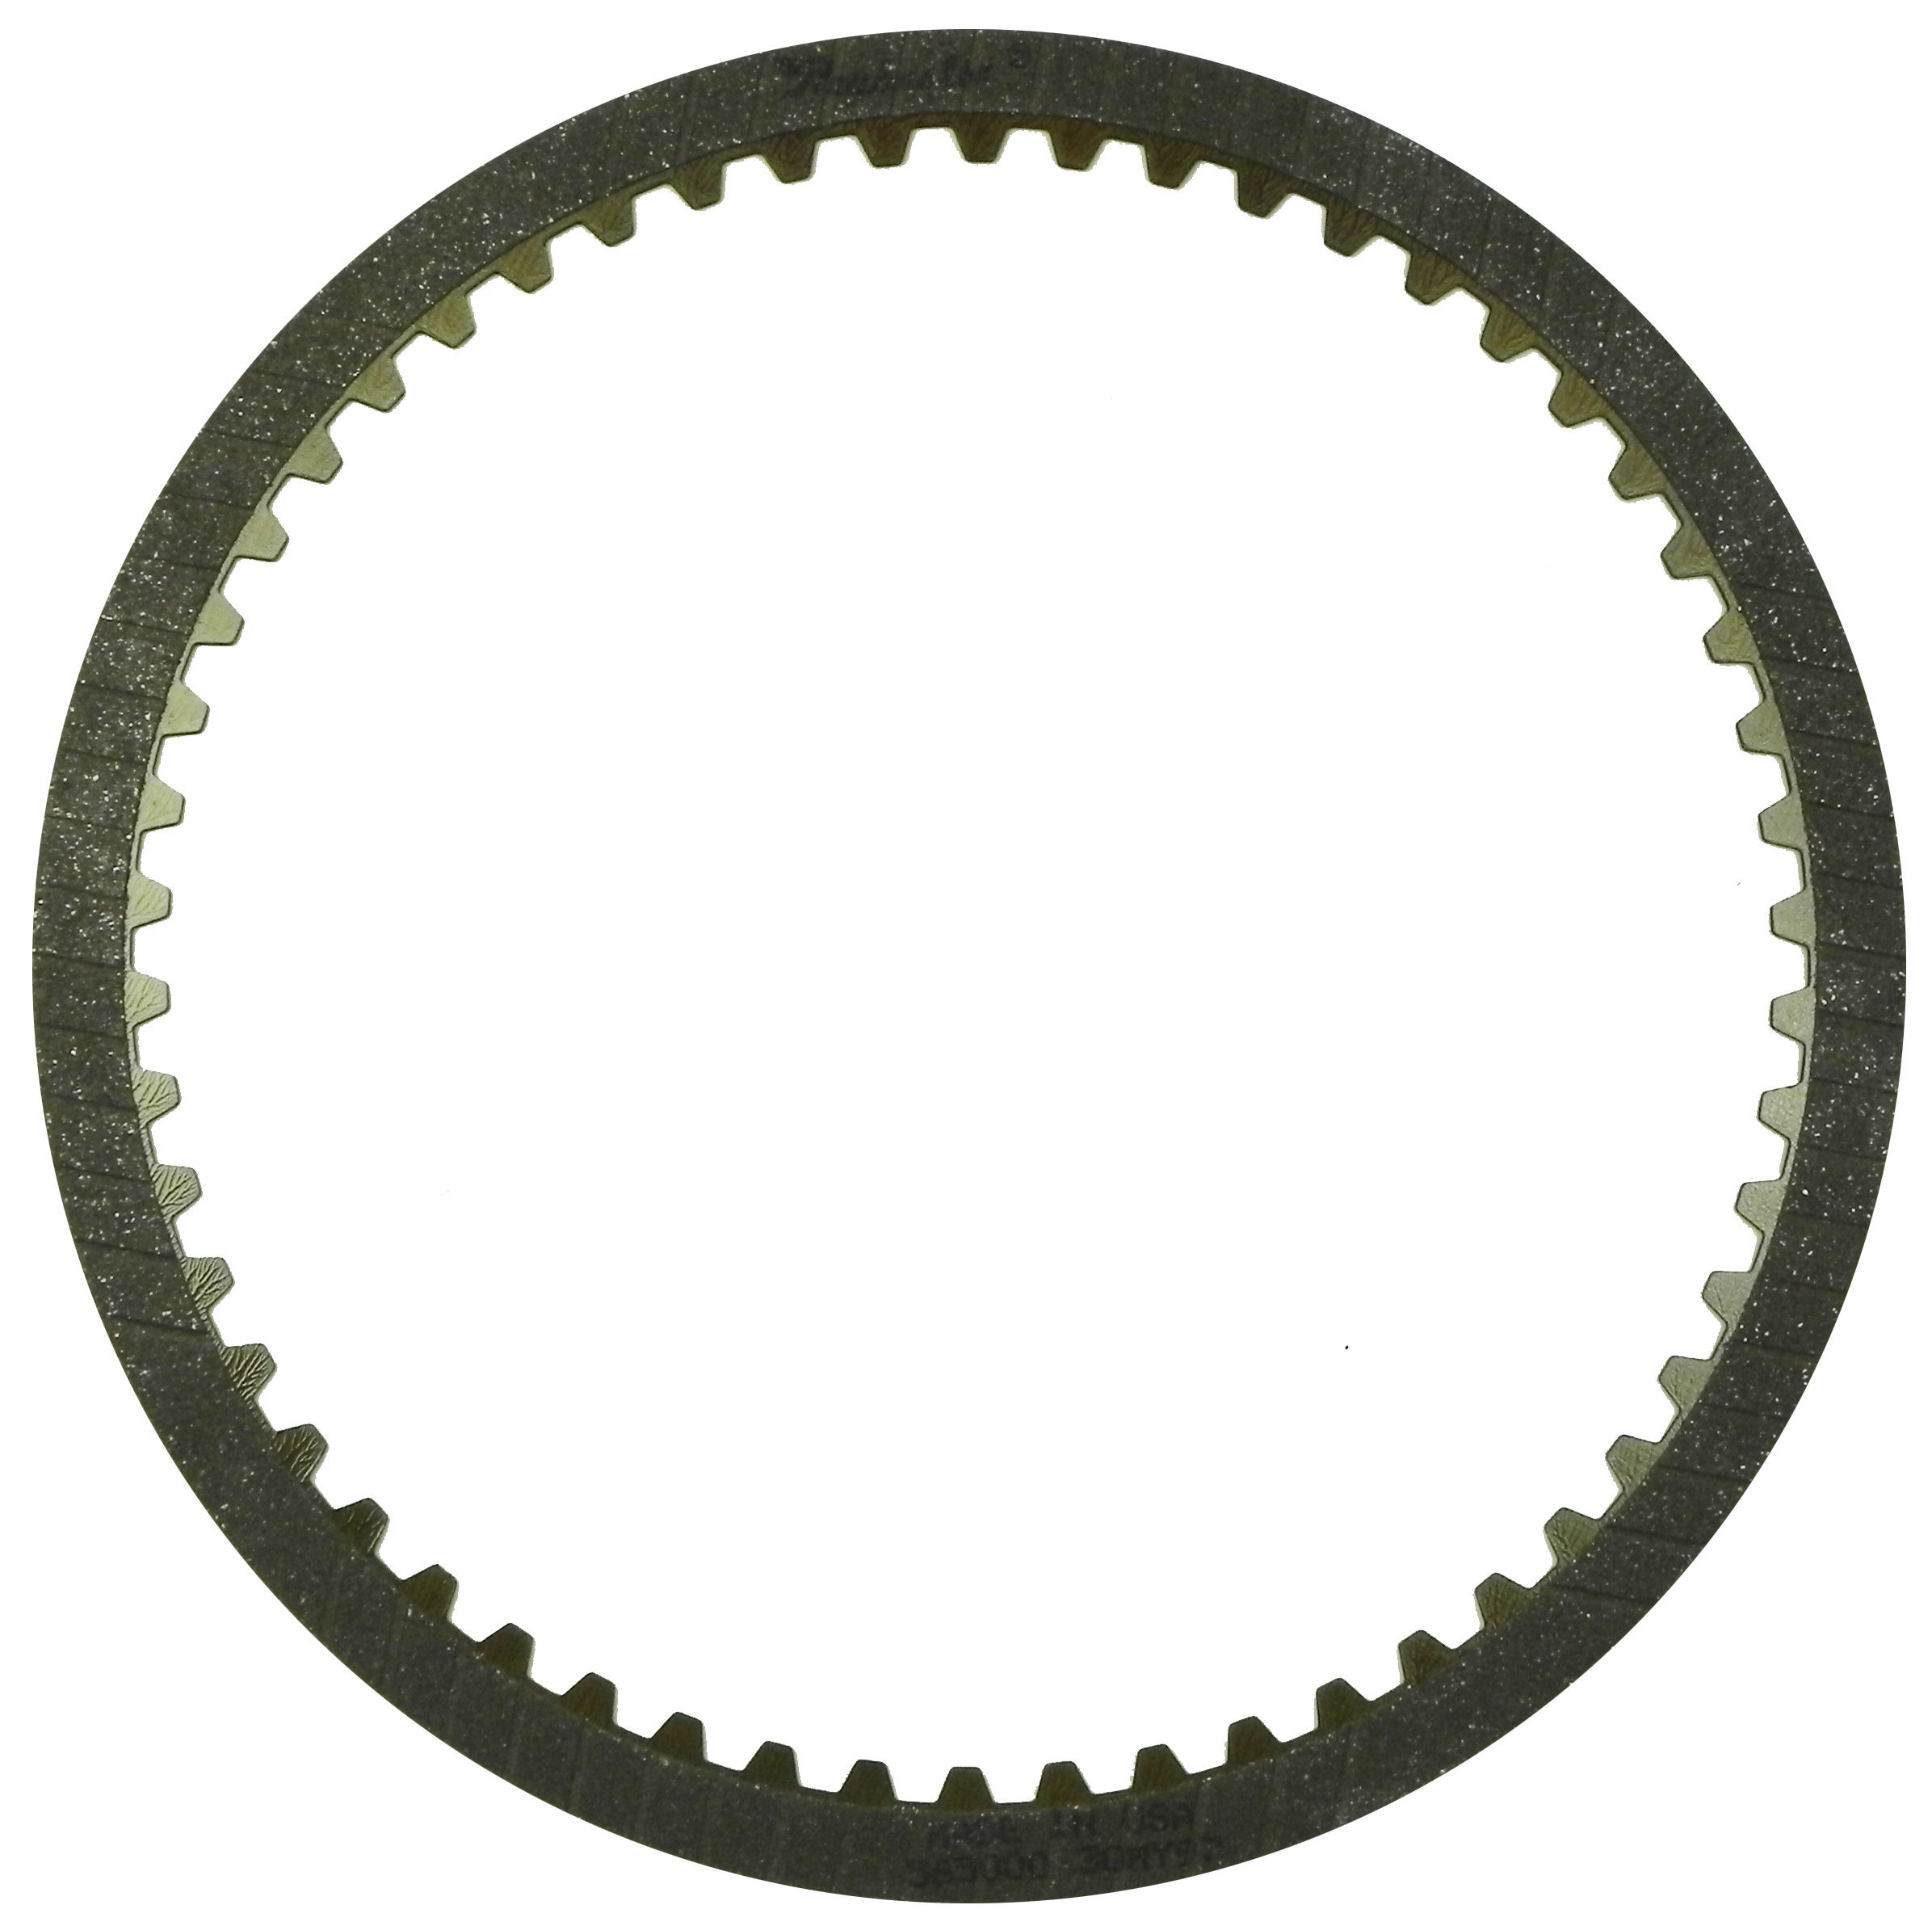 R565000 | 1991-ON Friction Clutch Plate Graphitic Low, Reverse Graphitic